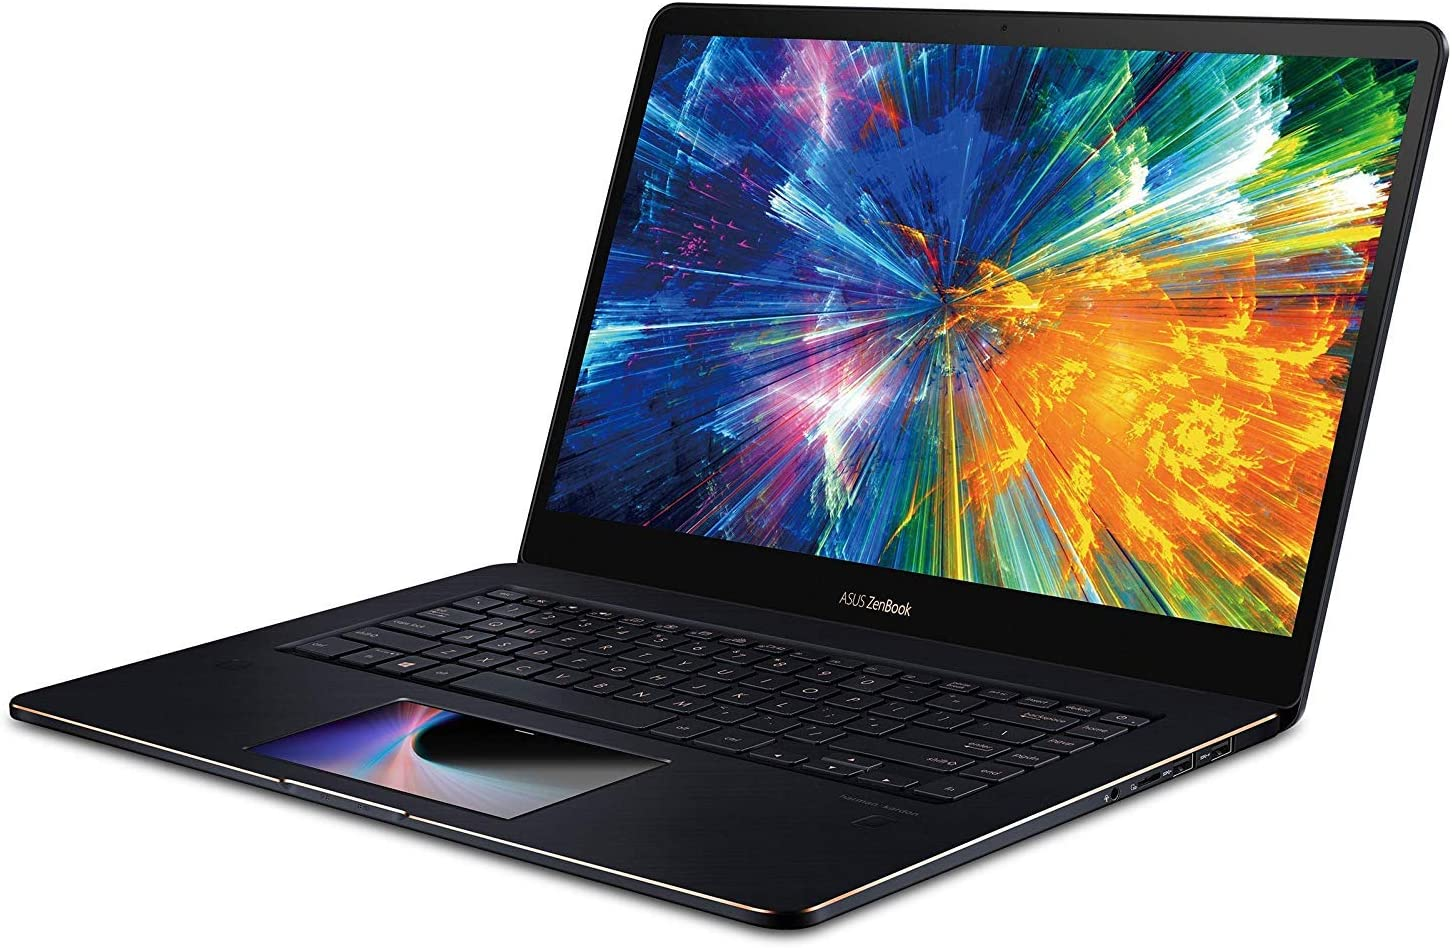 """ASUS ZenBook Pro 15 UX580GD 15.6"""" Gaming Laptop 4K UHD Touch Screen Pad Intel i i7-8750H 6 cores 12M Cache, up to 4.8 GHz, GTX 1050 (2TB SSD